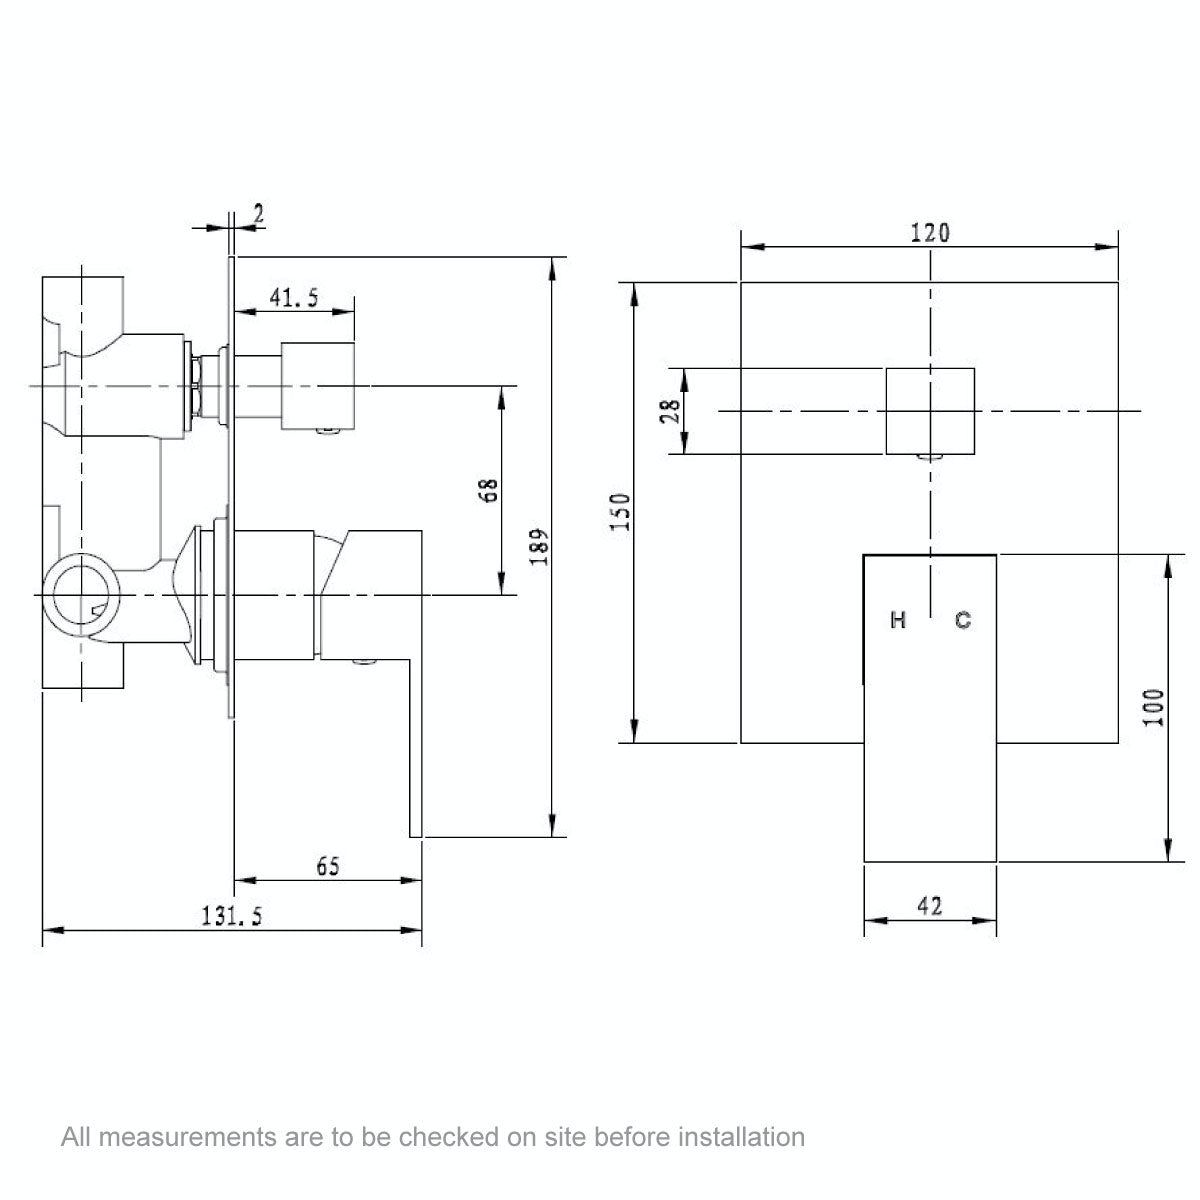 Dimensions for Orchard Square manual shower valve with diverter